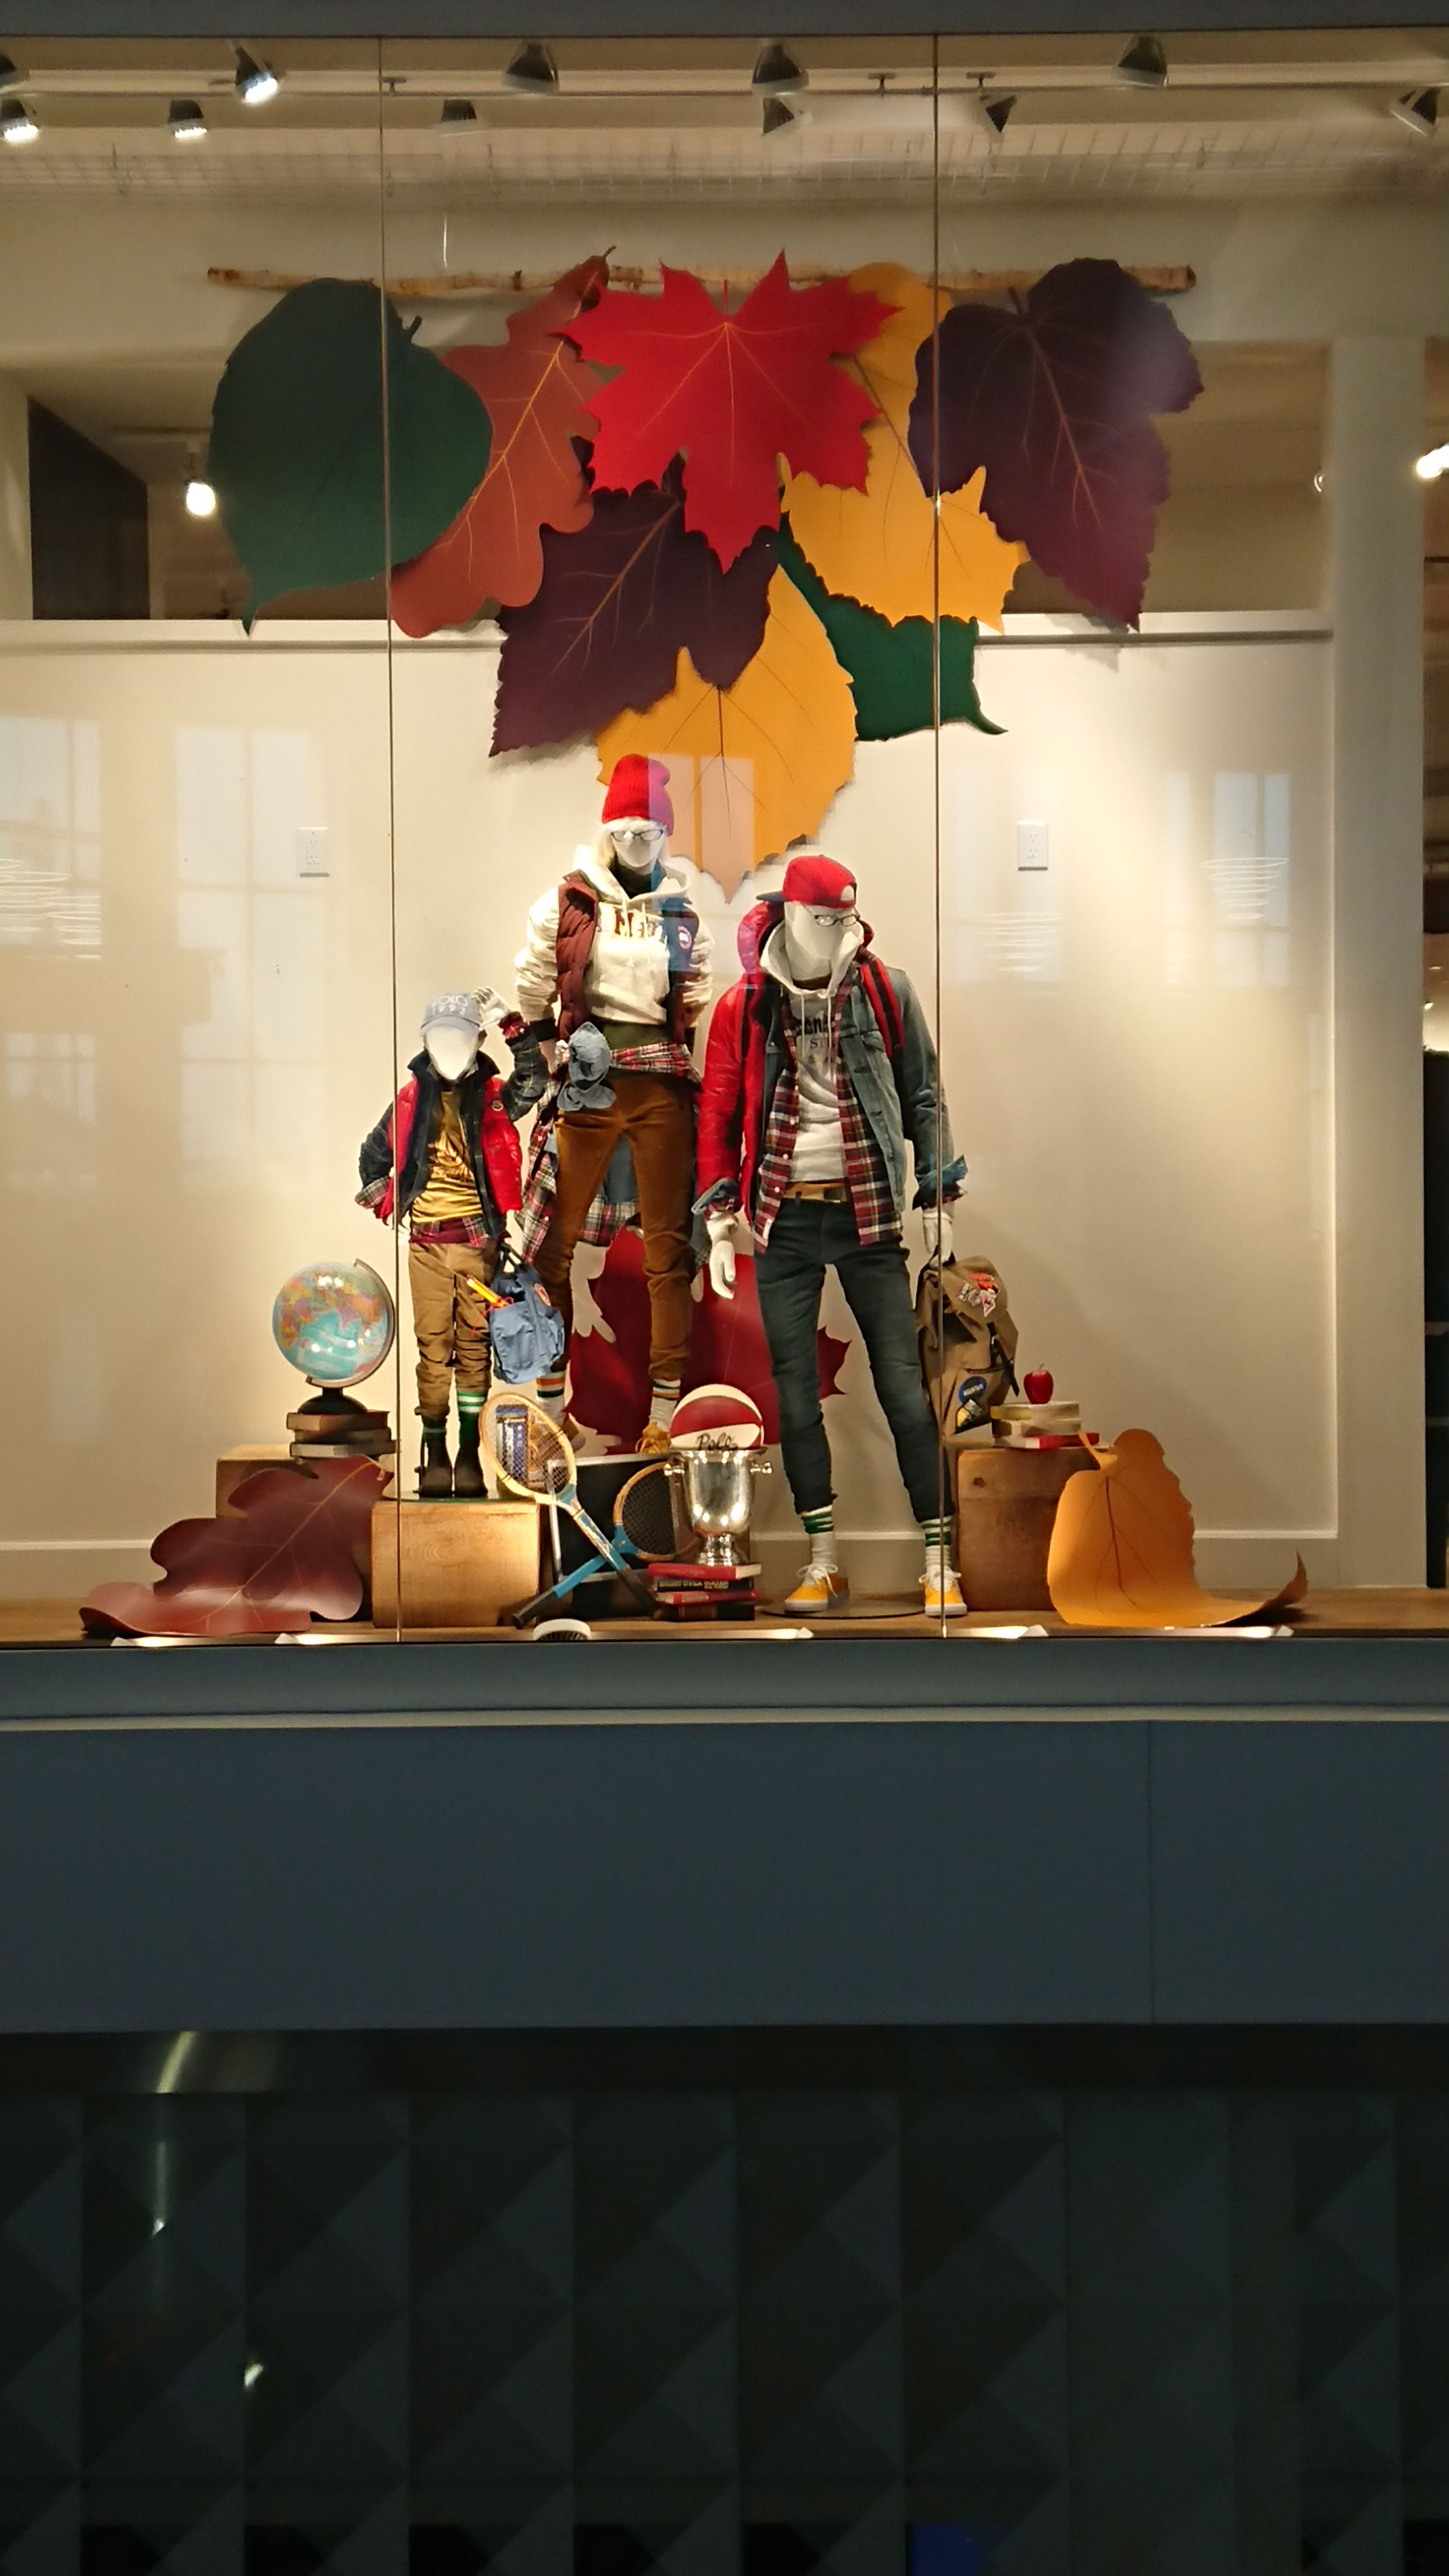 Back to school retail display window for Sporting Life